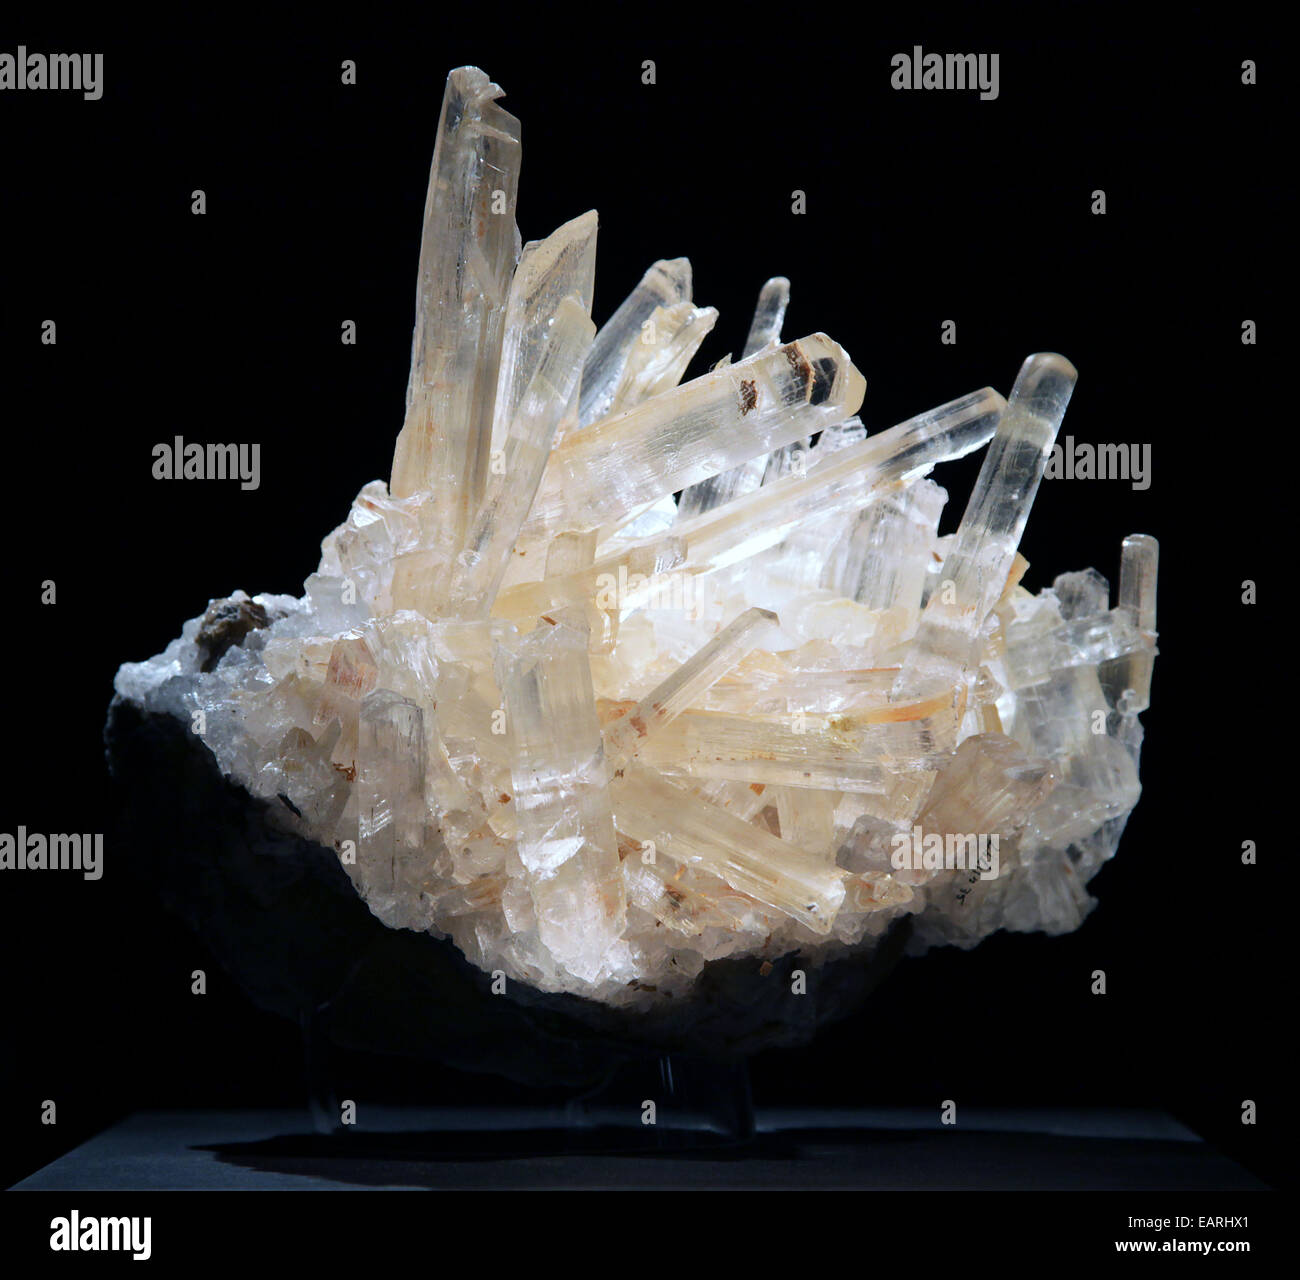 Selenite cluster of the mineral gypsum. - Stock Image